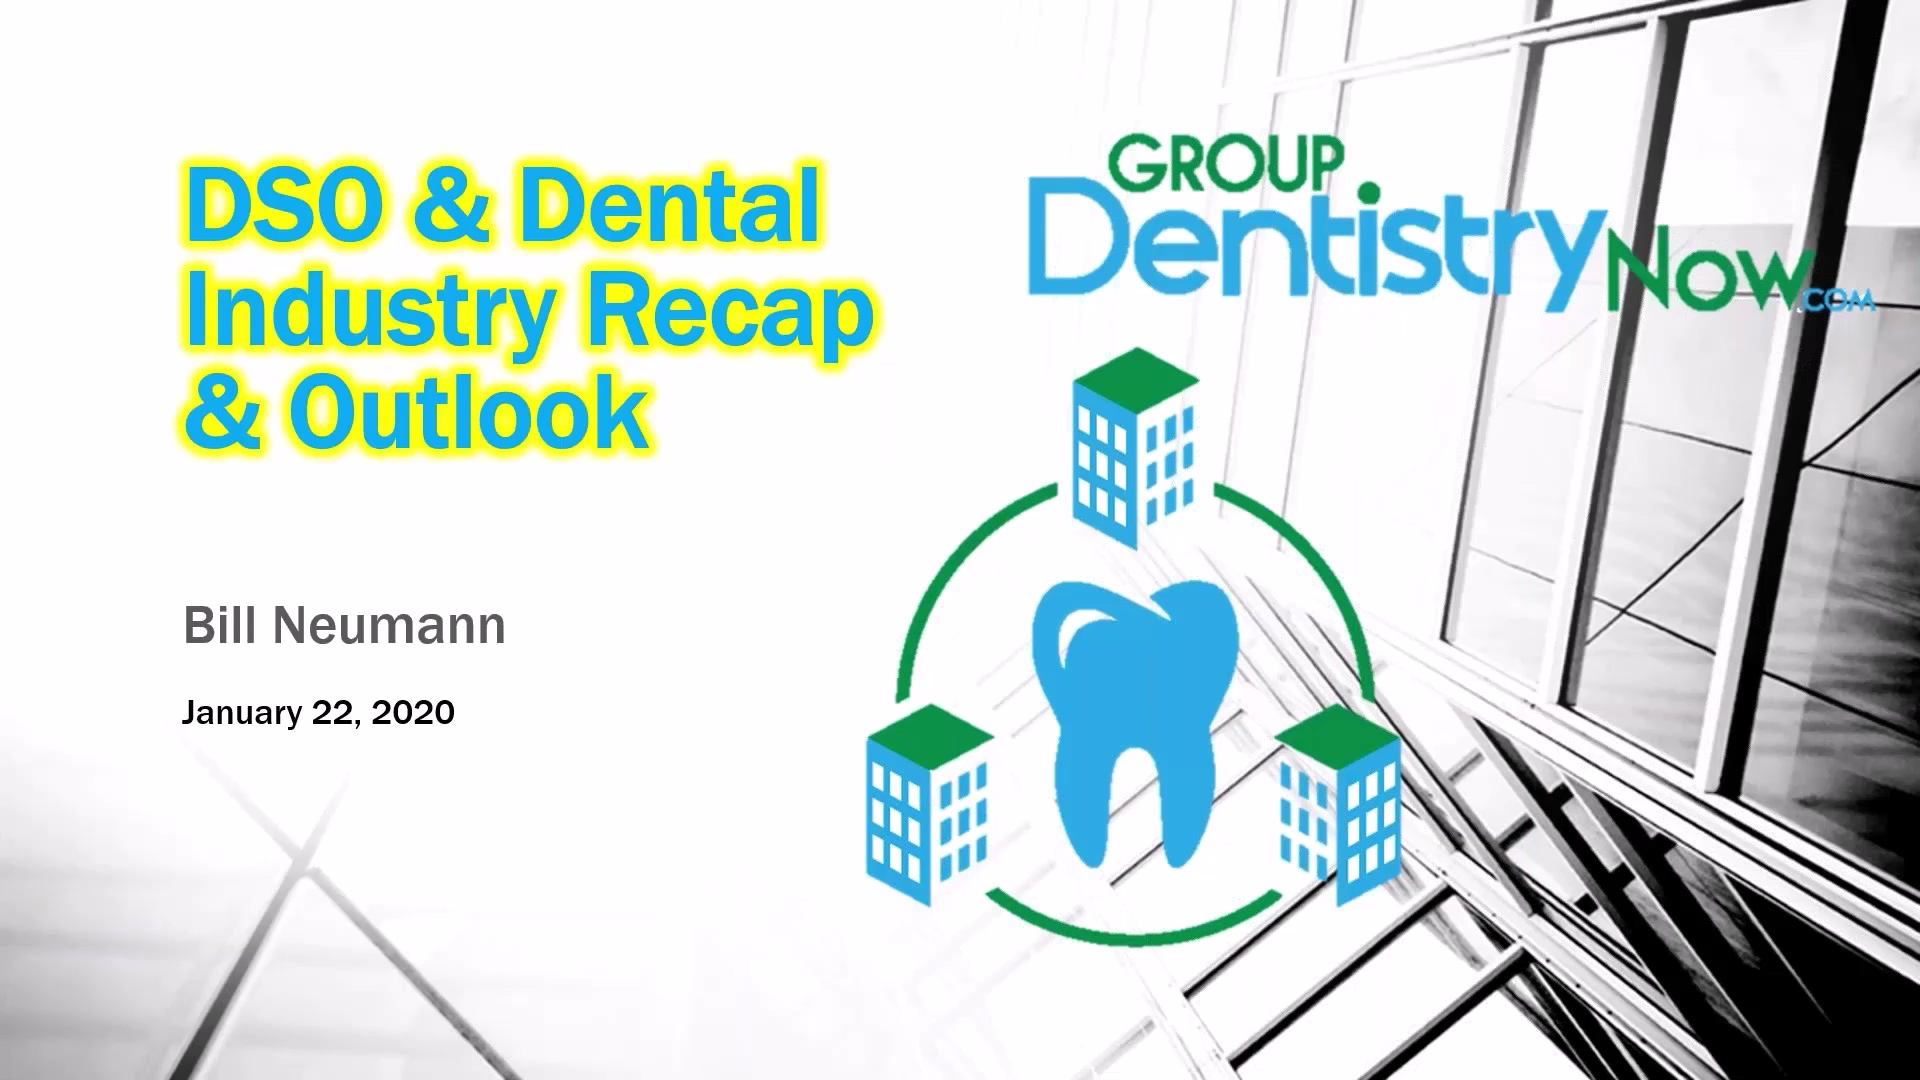 2019 Dental Industry Recap and Future Outlook